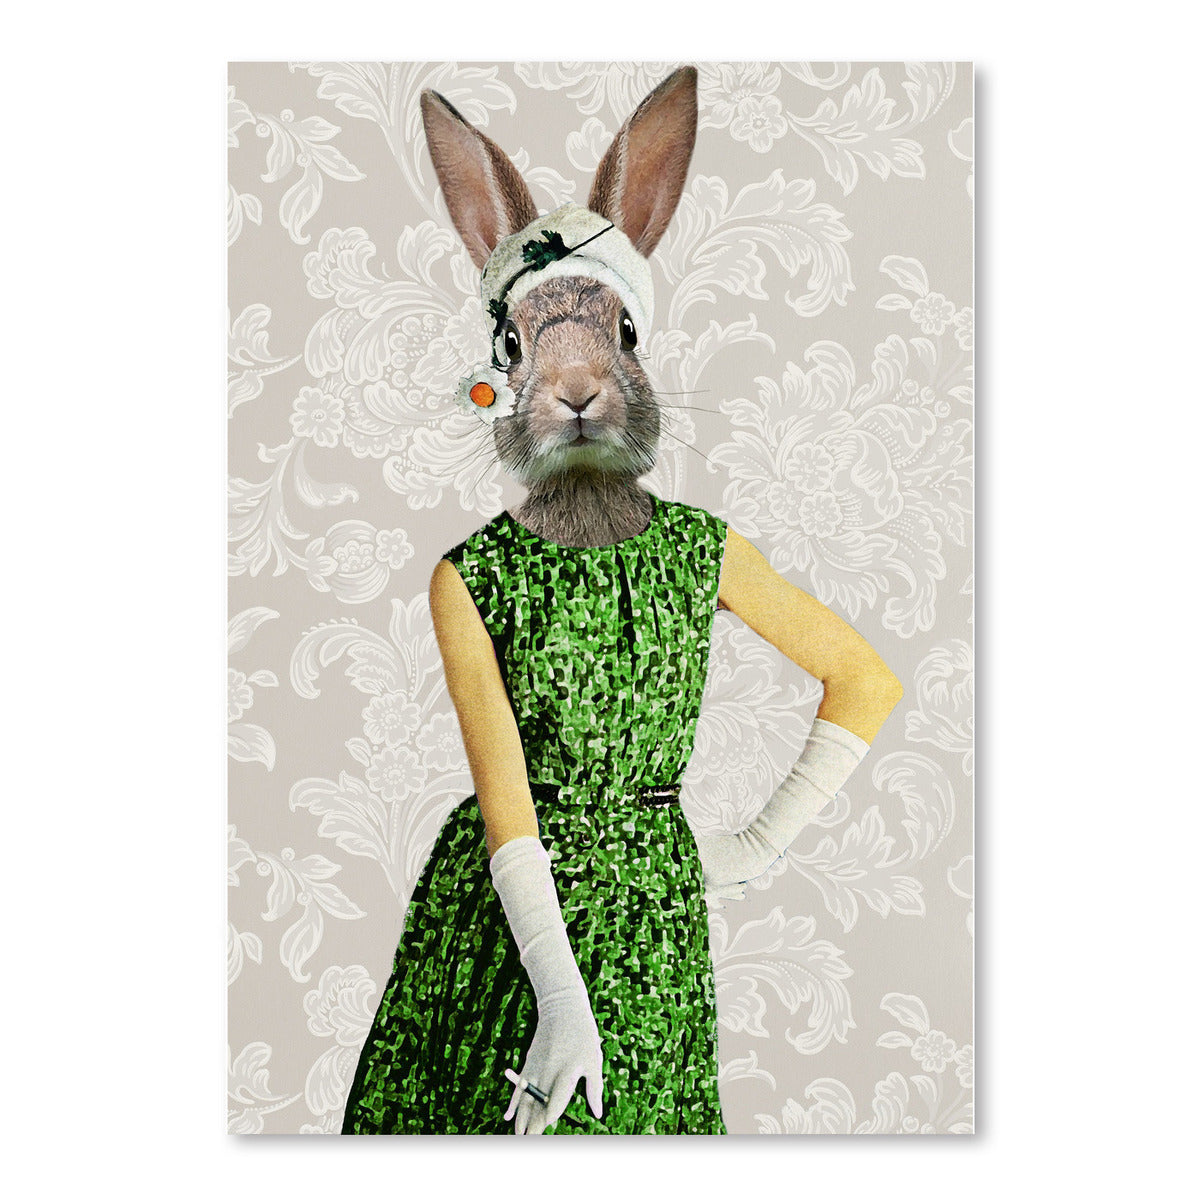 Vintage Rabbit Woman by Coco de Paris - Art Print - Americanflat